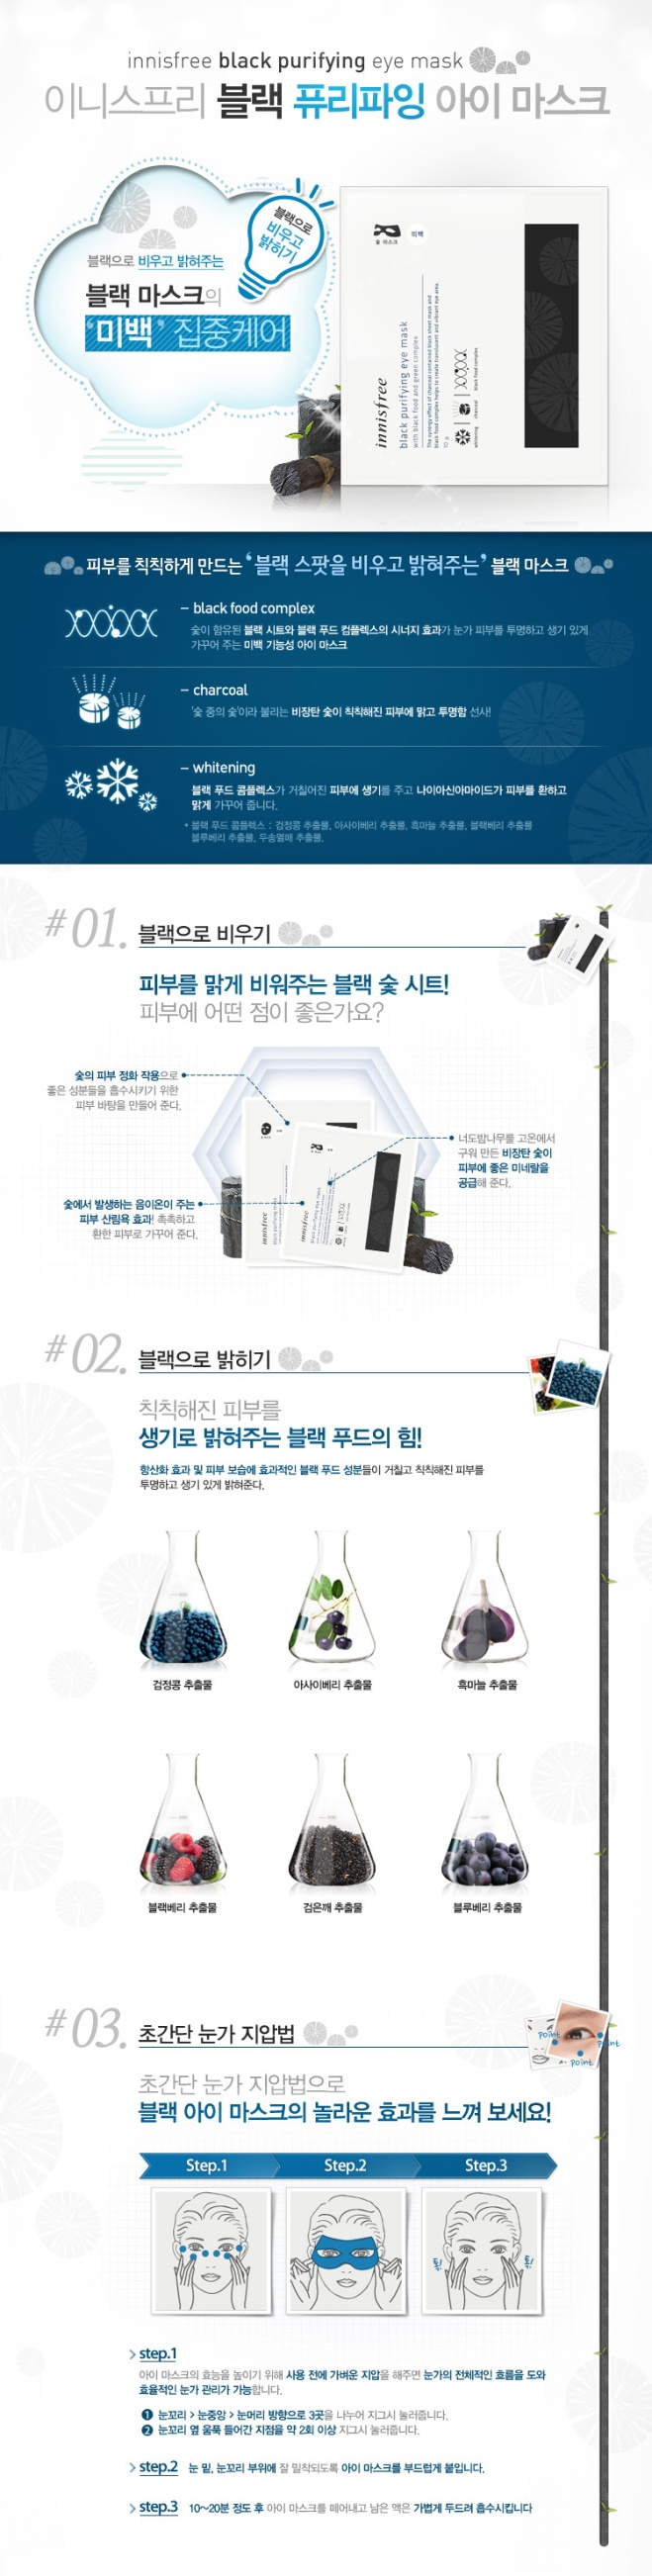 Credit: Innisfree Korea website